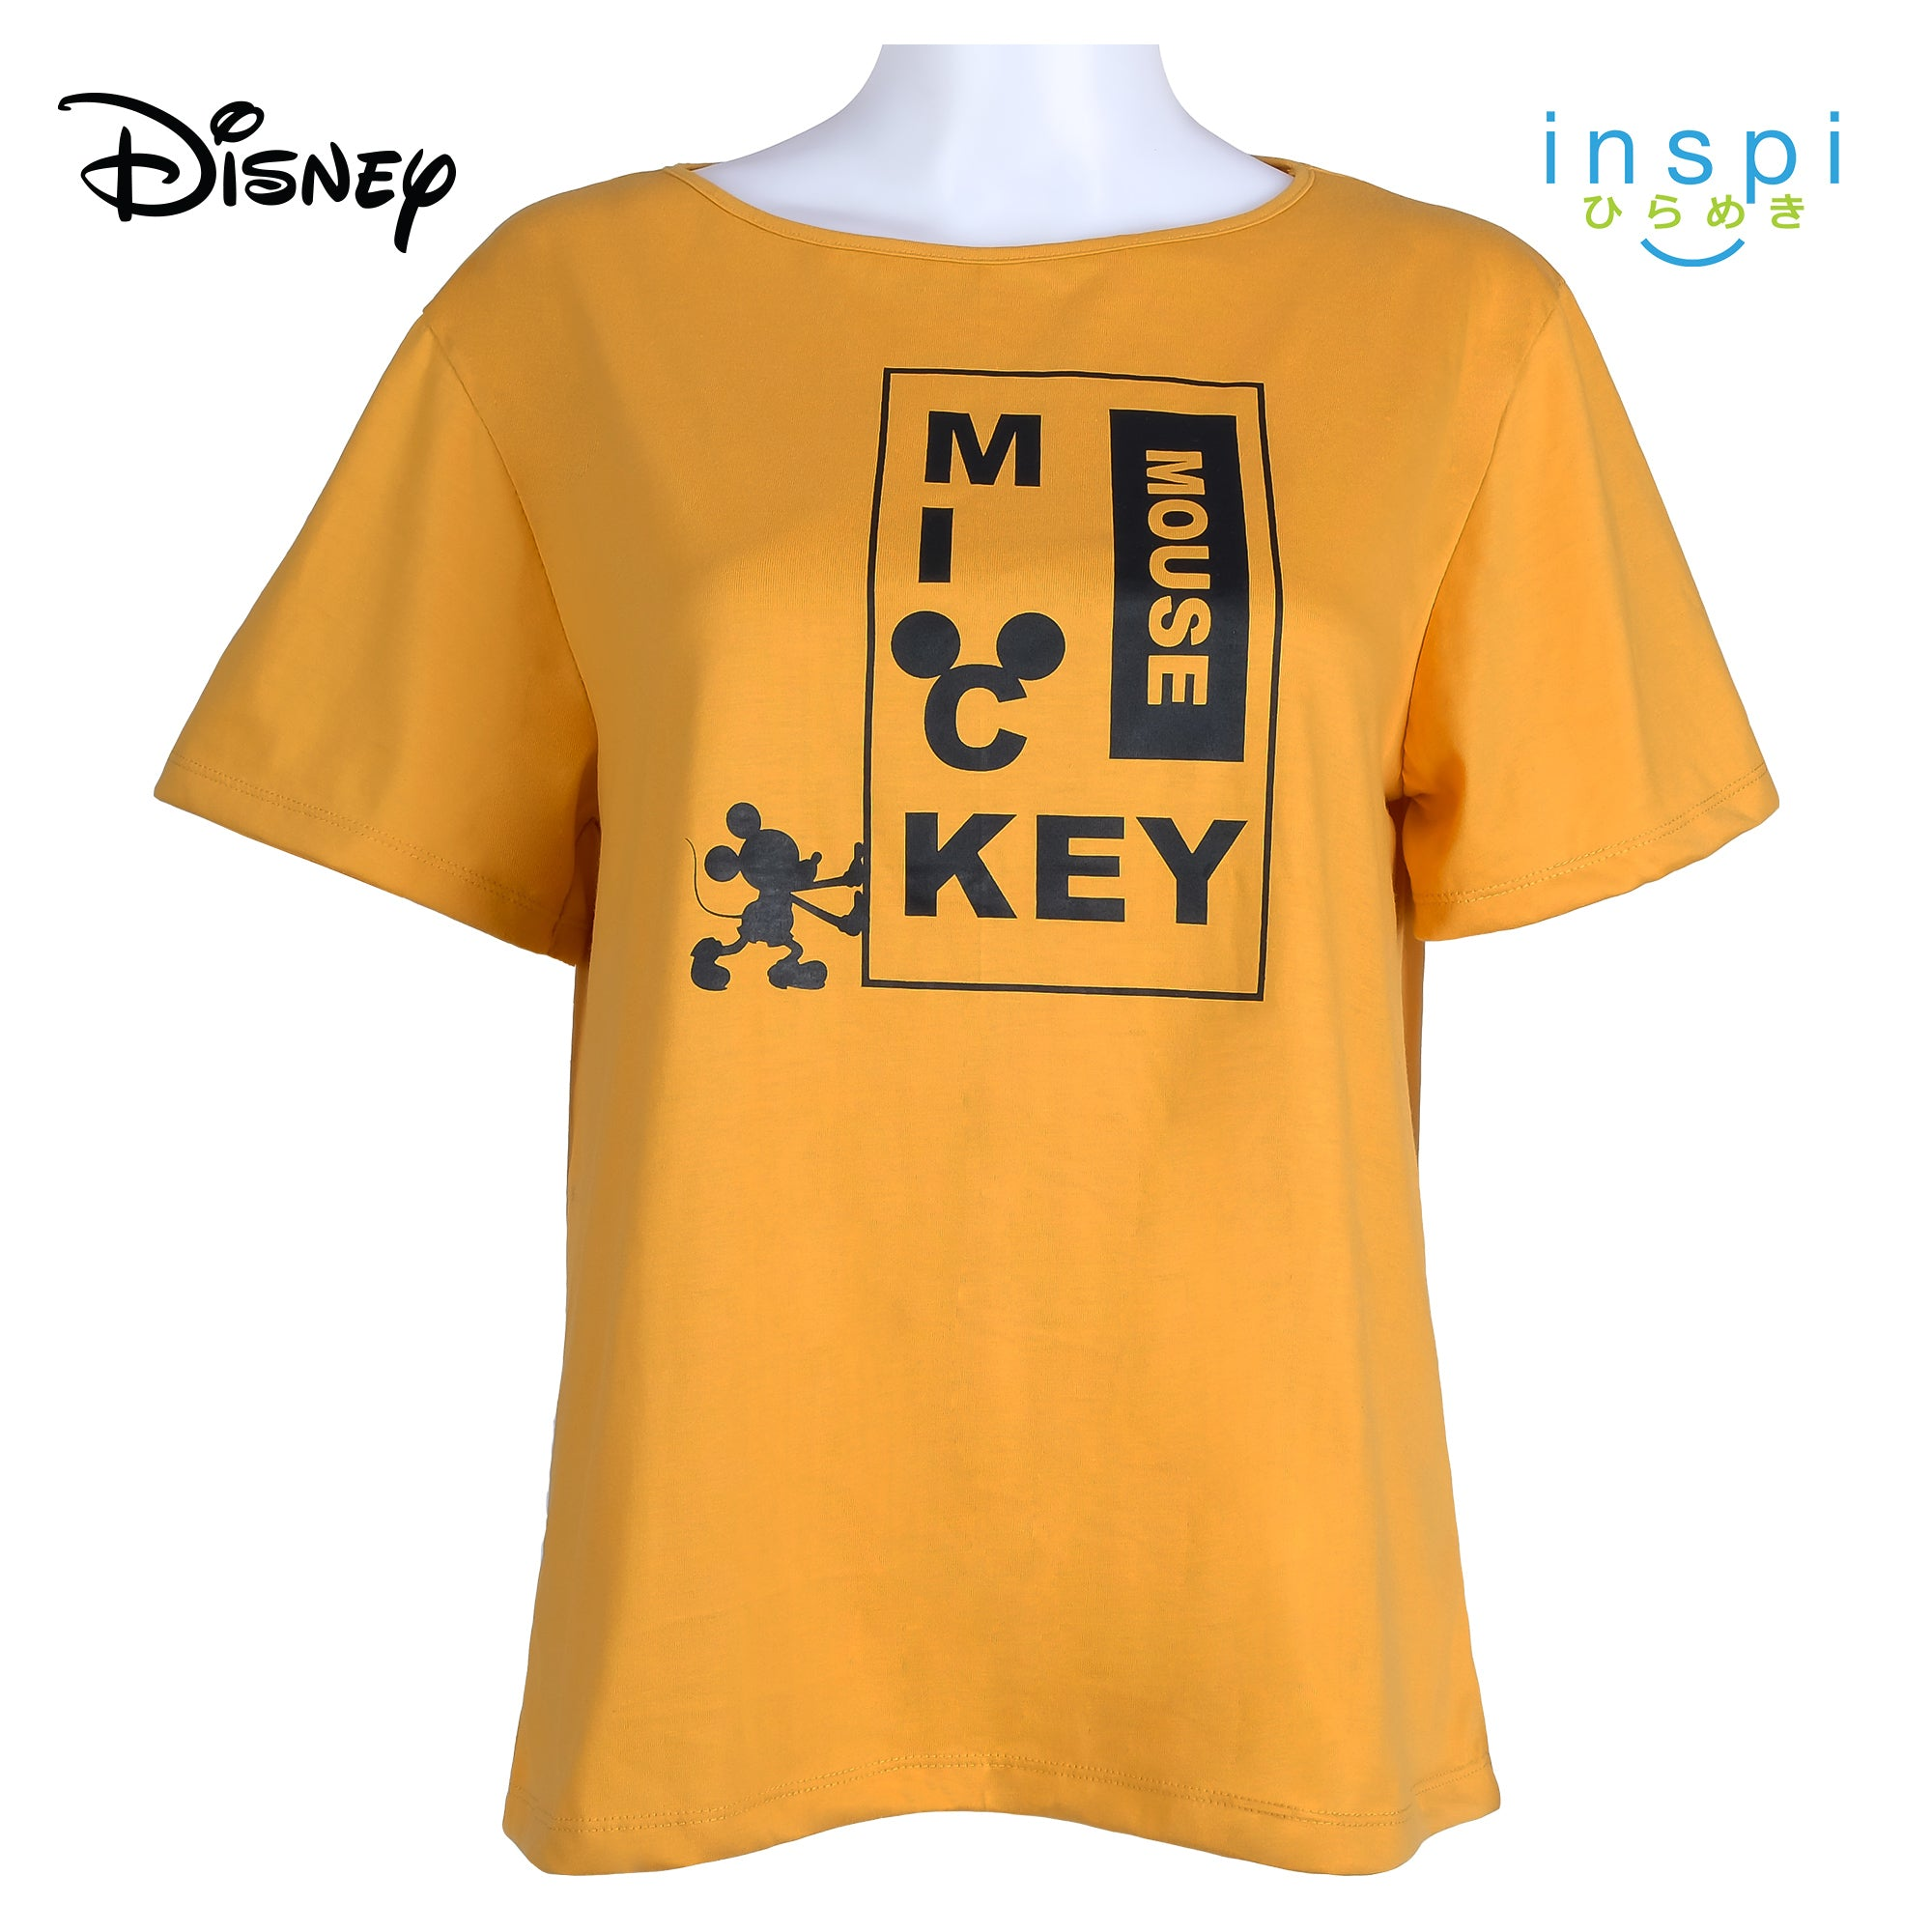 Disney Mickey Mouse Ladies Comfies Coords Shirt in Yellow Coords pambahay loungewear